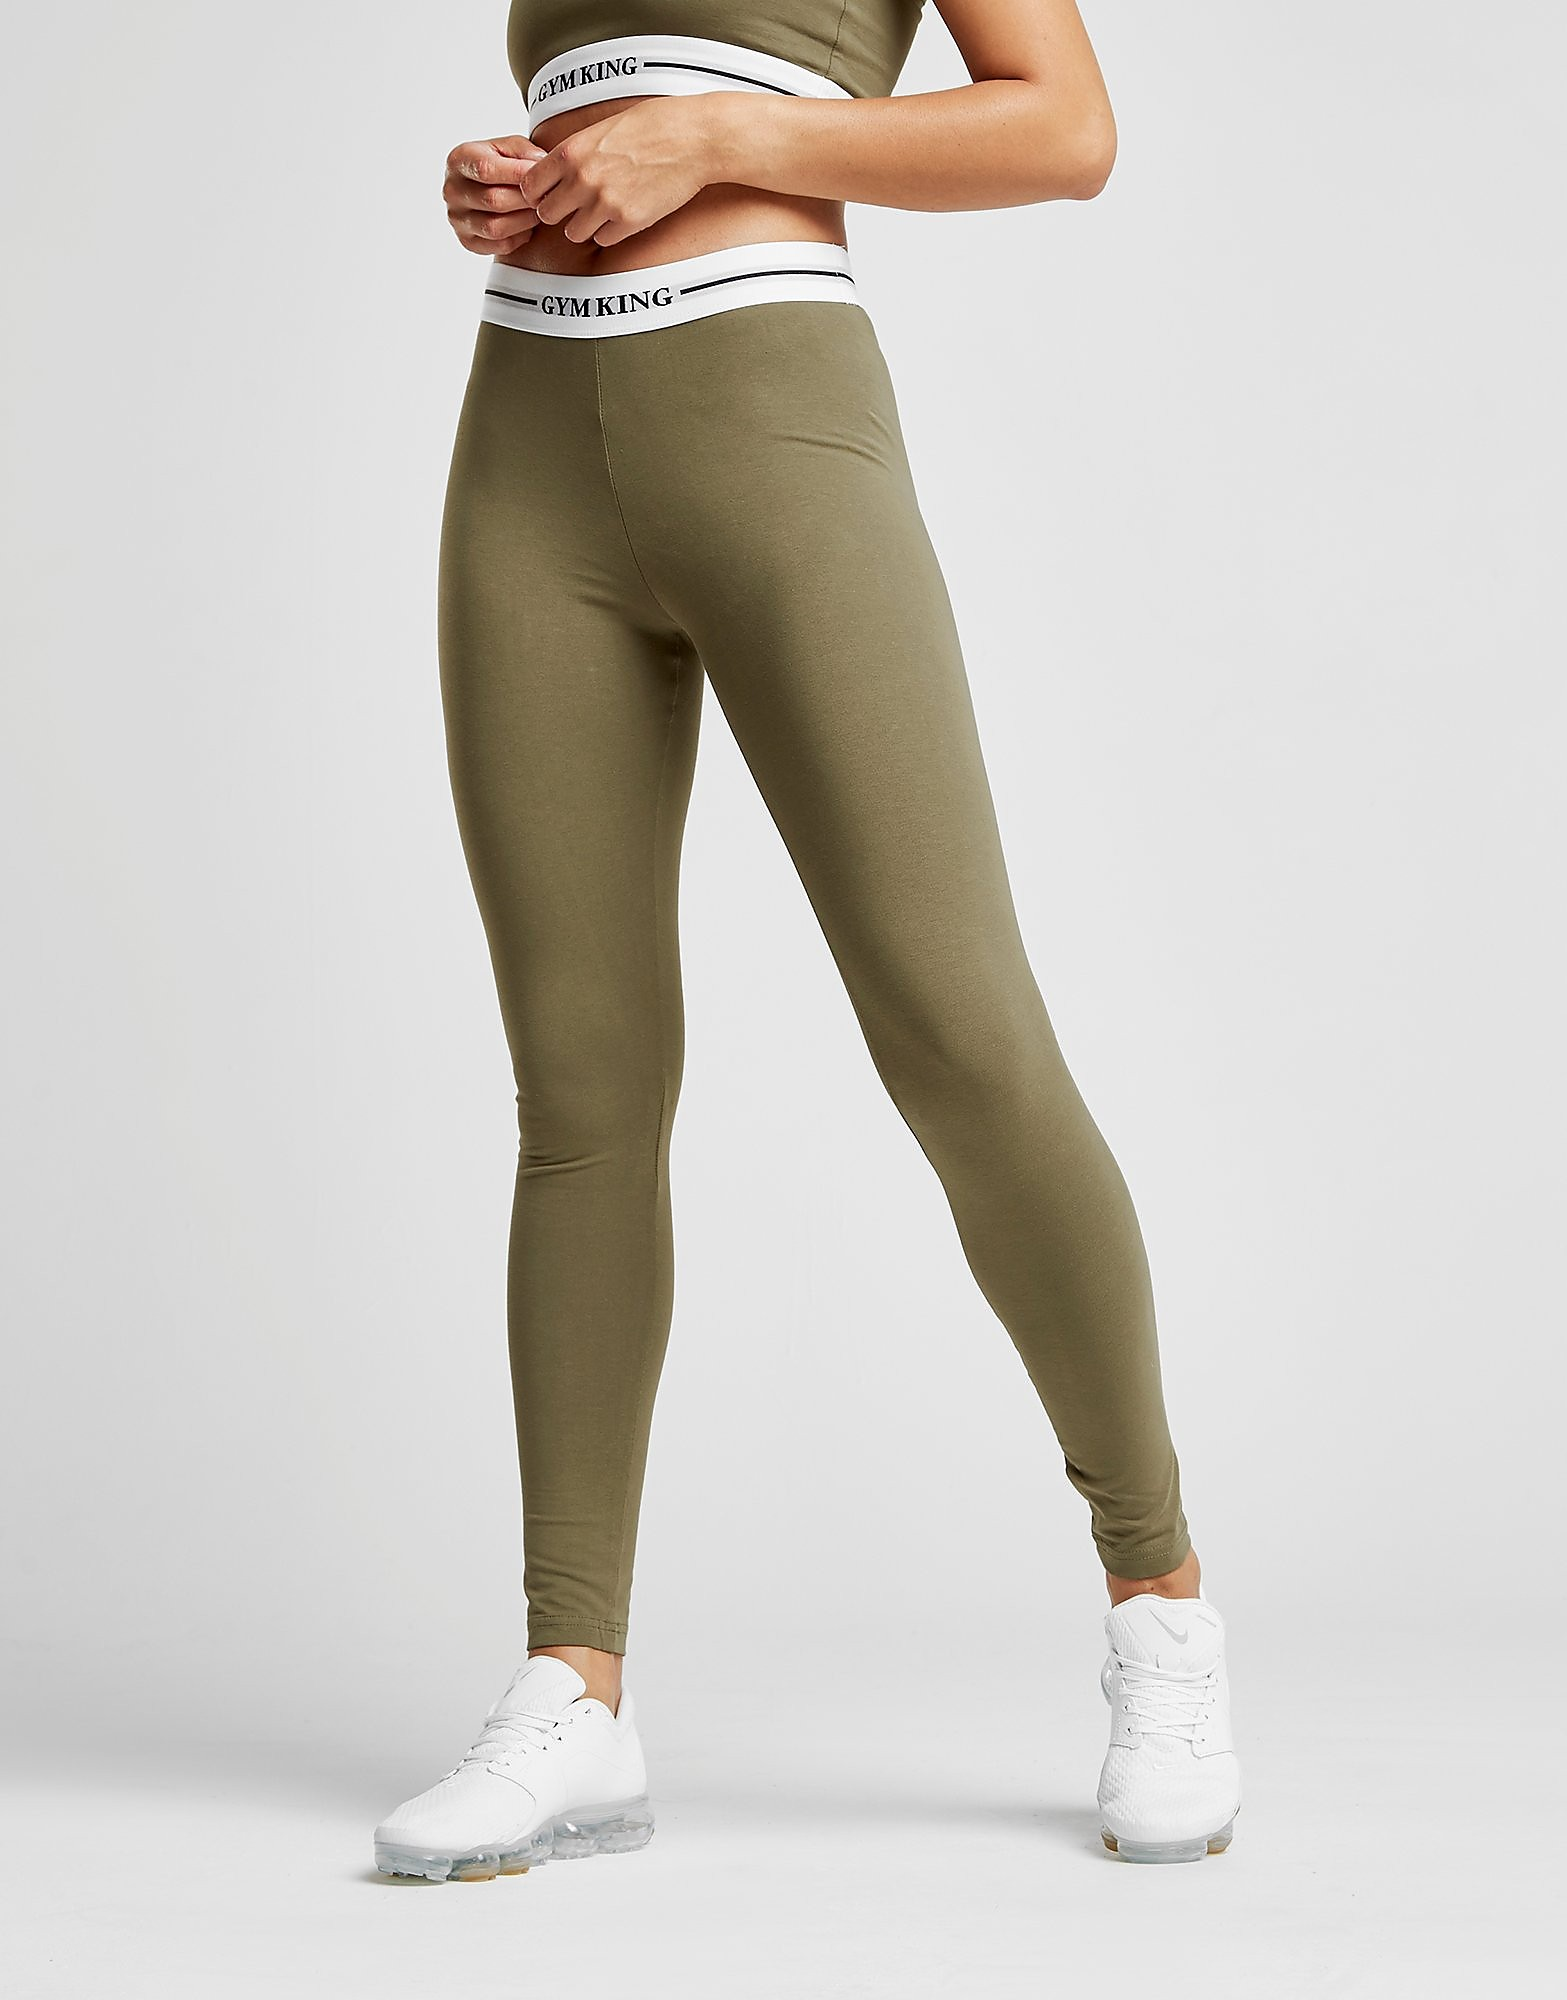 Gym King Logo Leggings